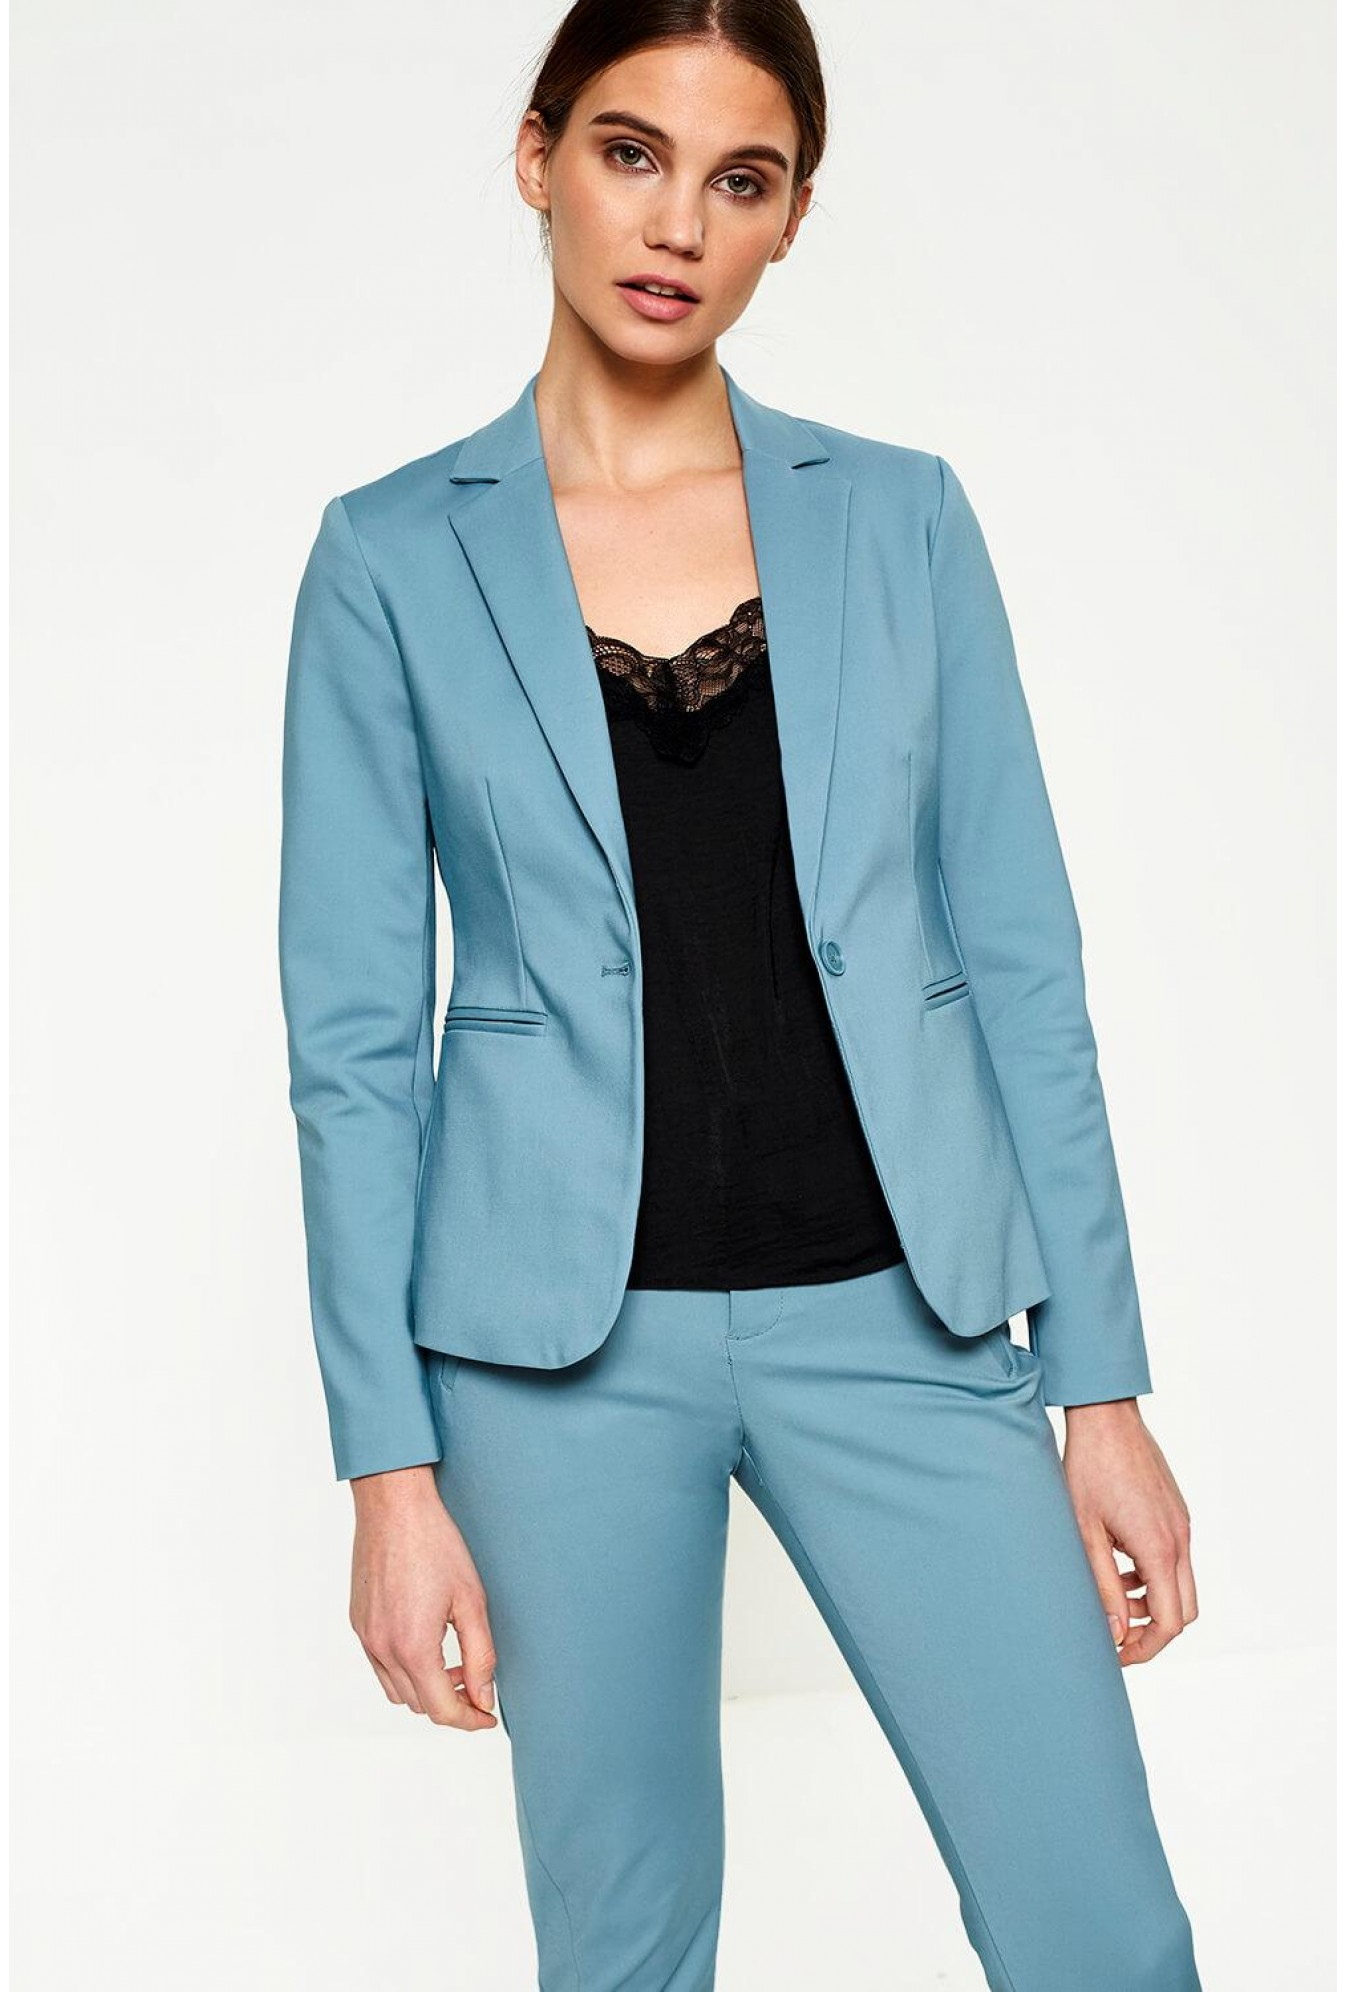 a7b61d8554 More Views. Victoria Long Sleeve Blazer in Duck Egg Blue